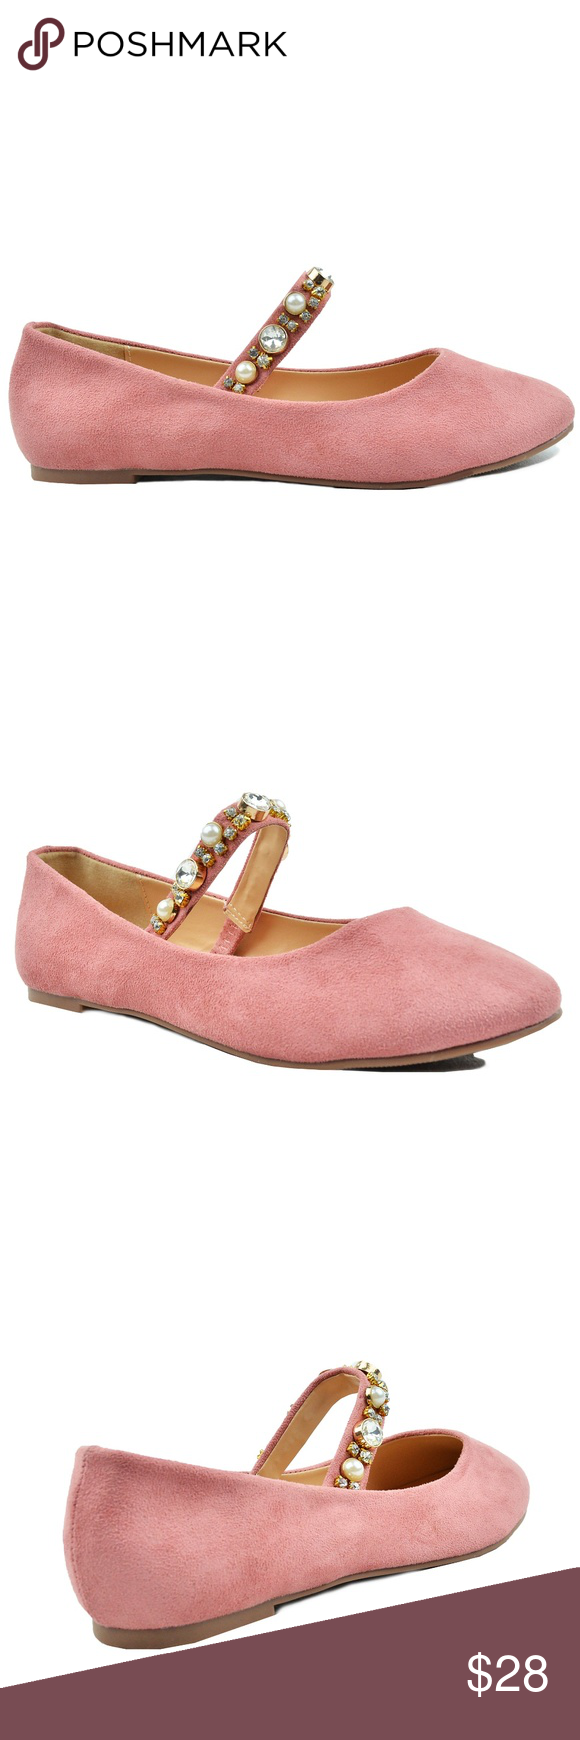 a7e58e24cc Women s Mary Janes Rhinestone Round Toe Mauve Flat Round Toe Mary Jane  Strap With Rhinestones Women s Ballet Flat Very Comfy Shoes Imported Faux  Suede ...